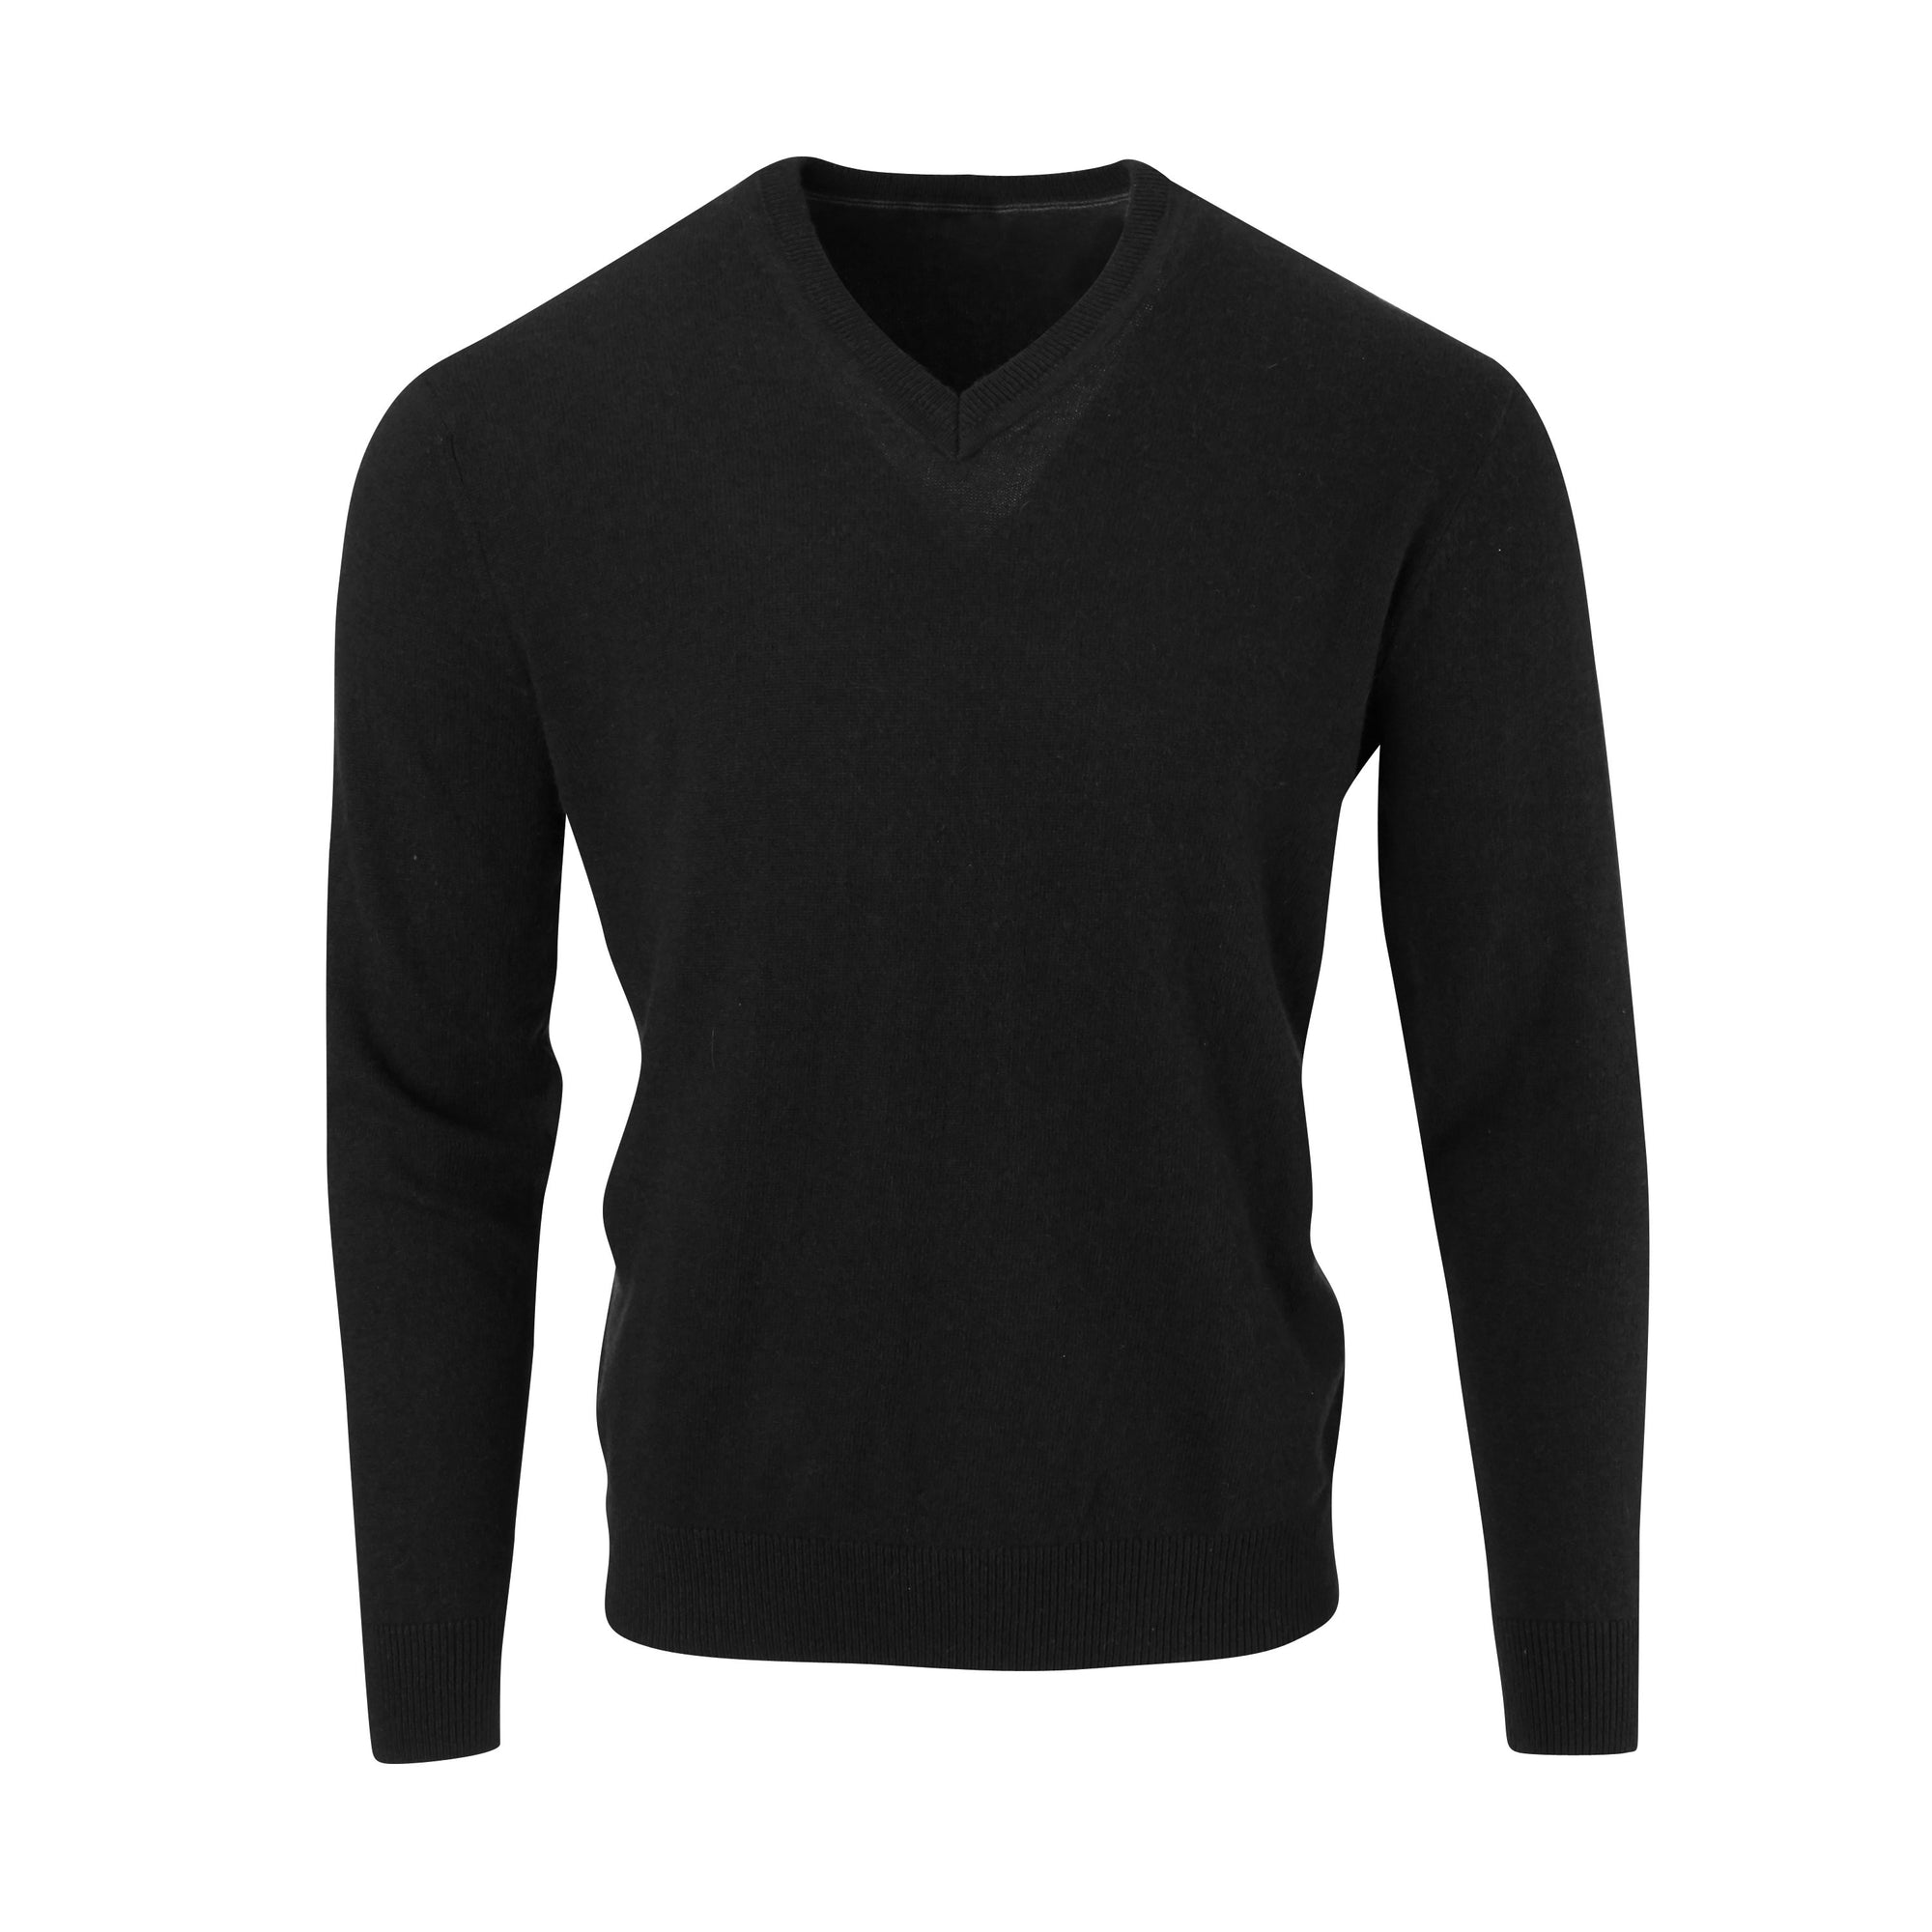 THE 5TH AVENUE CASHMERE V-NECK SWEATER - Black OS35709VLS